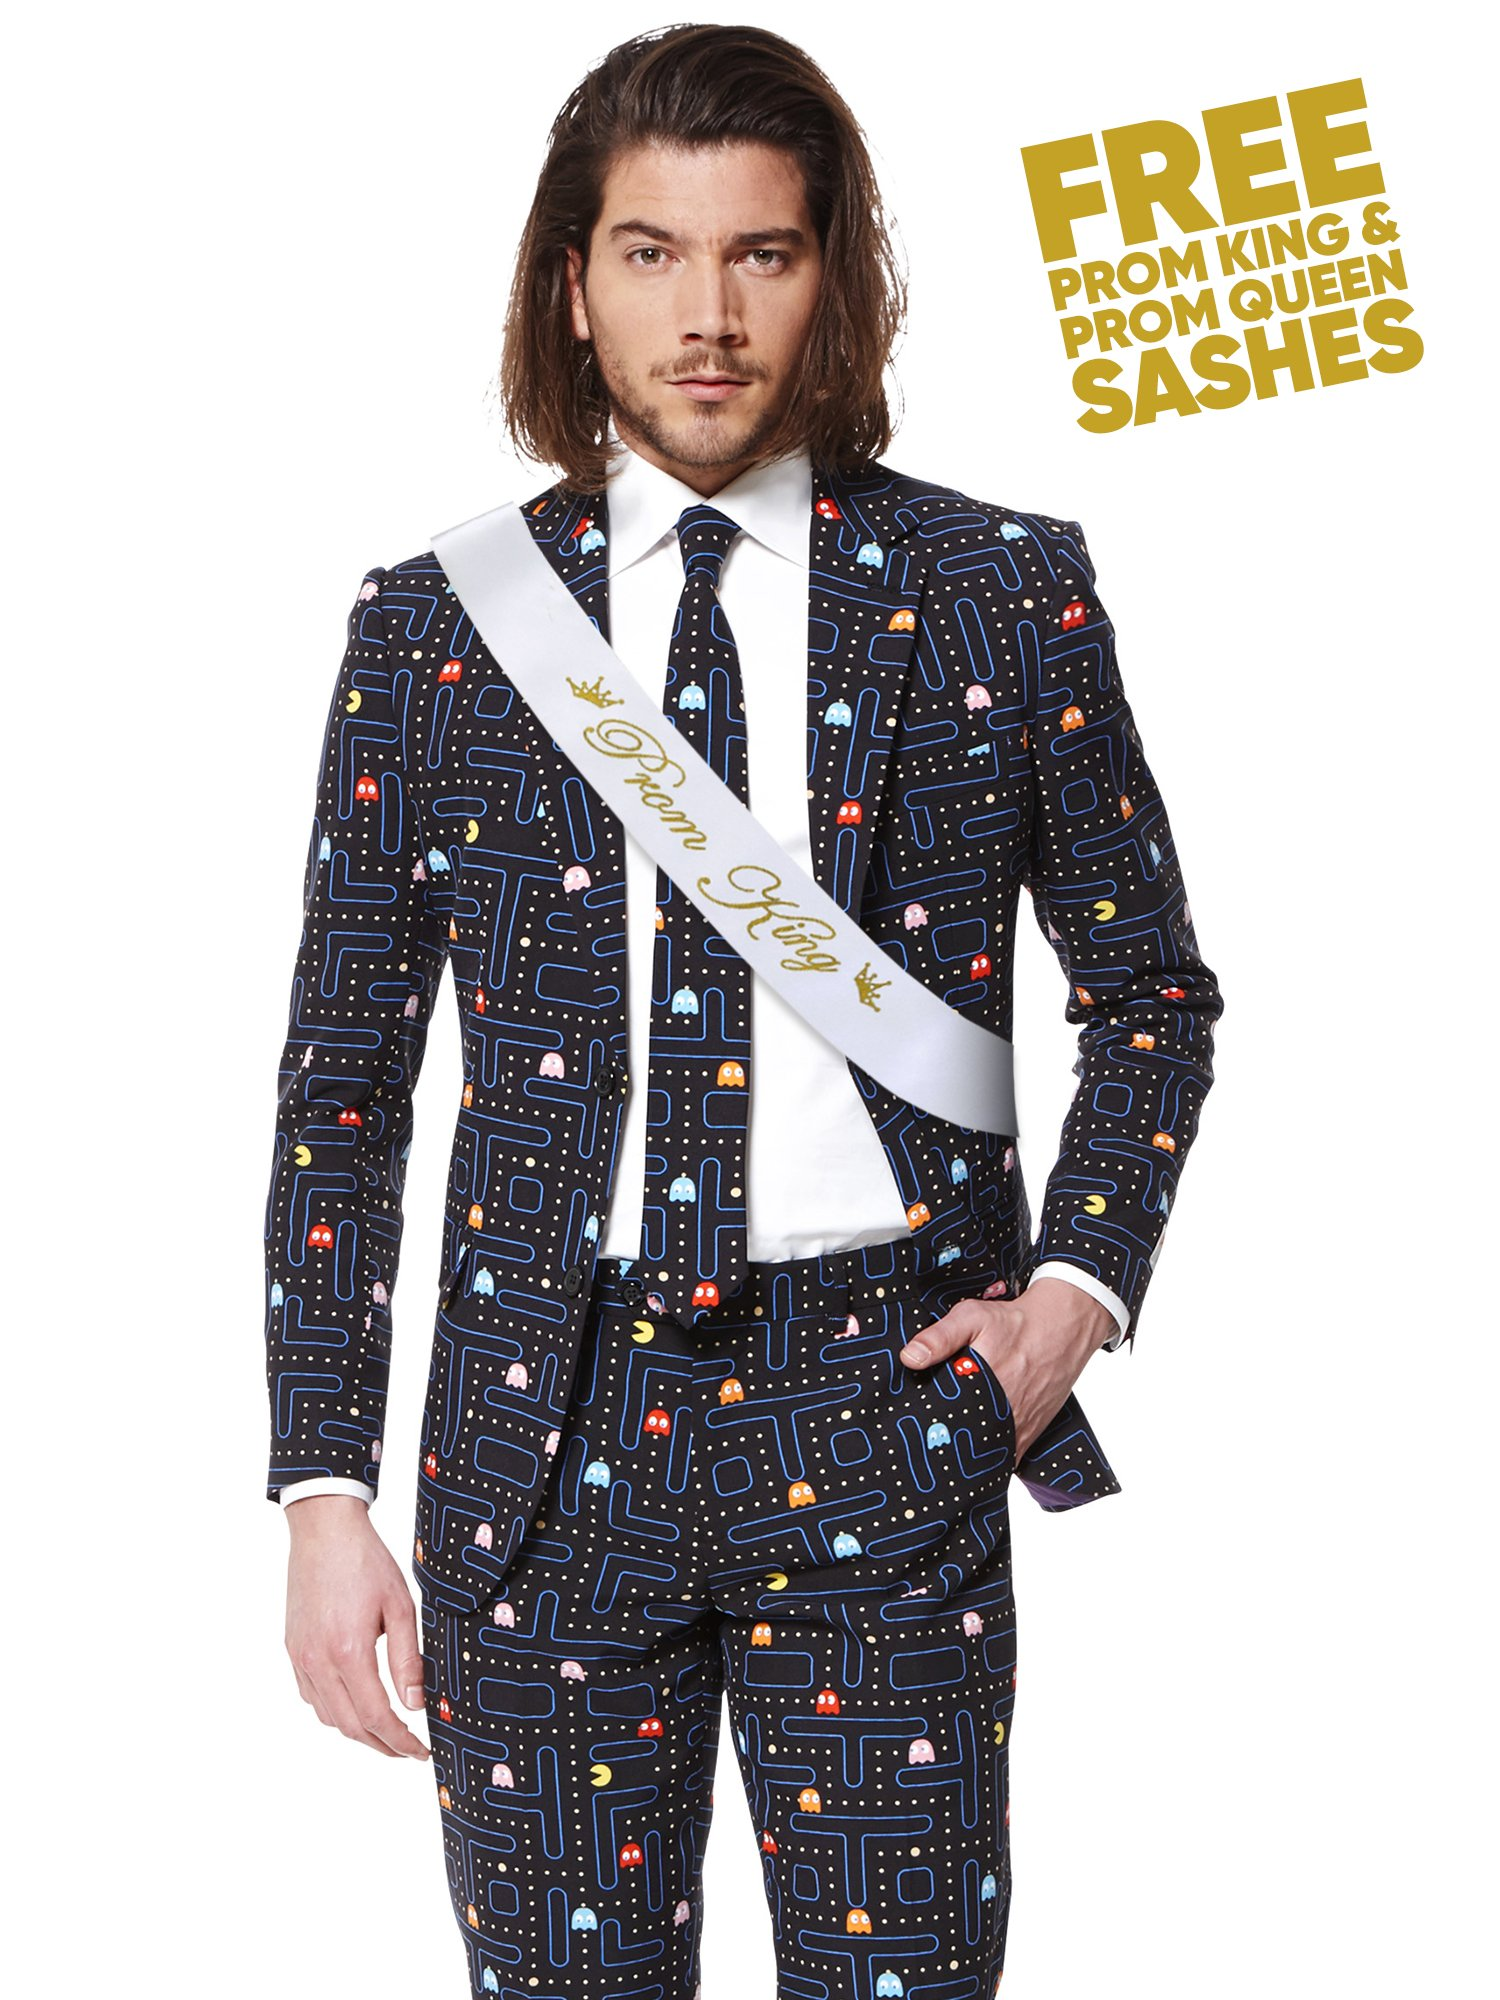 Opposuits Fancy Colored Suit For Men Now With Free Prom King and Prom Queen Sash,Pac-manTM,US44 by Opposuits (Image #1)